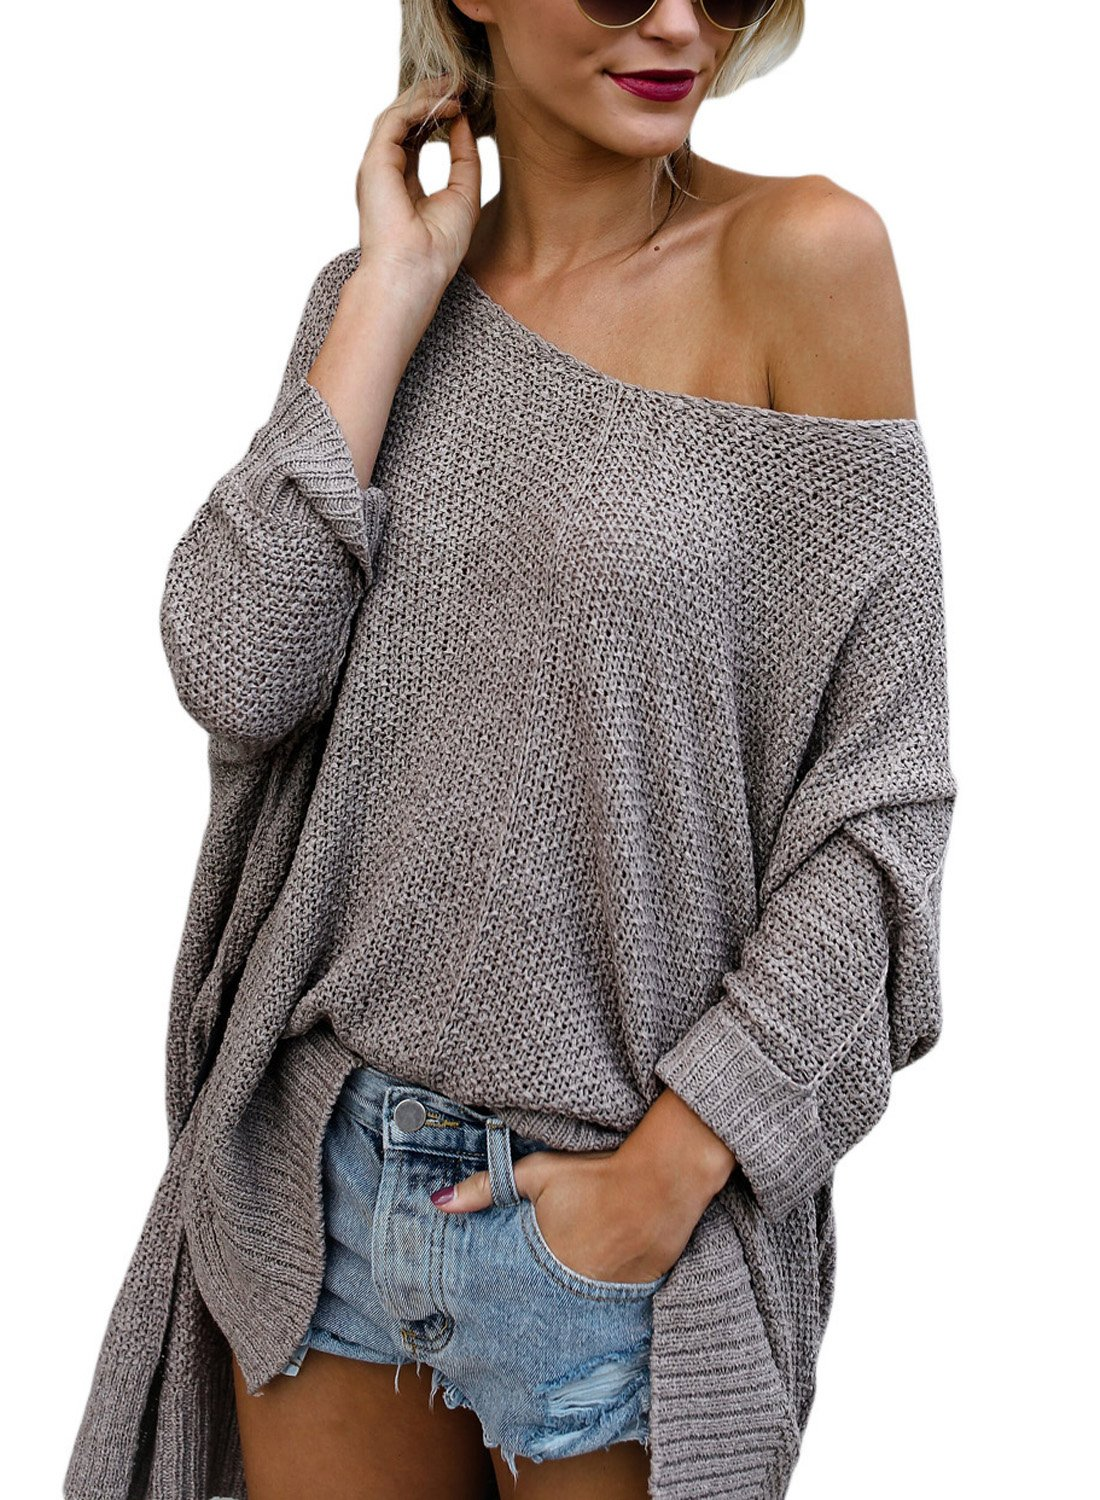 ZKESS Womens Long Sleeve Blouse Casual Loose Knit Pullover Sweater Tops Coffee M